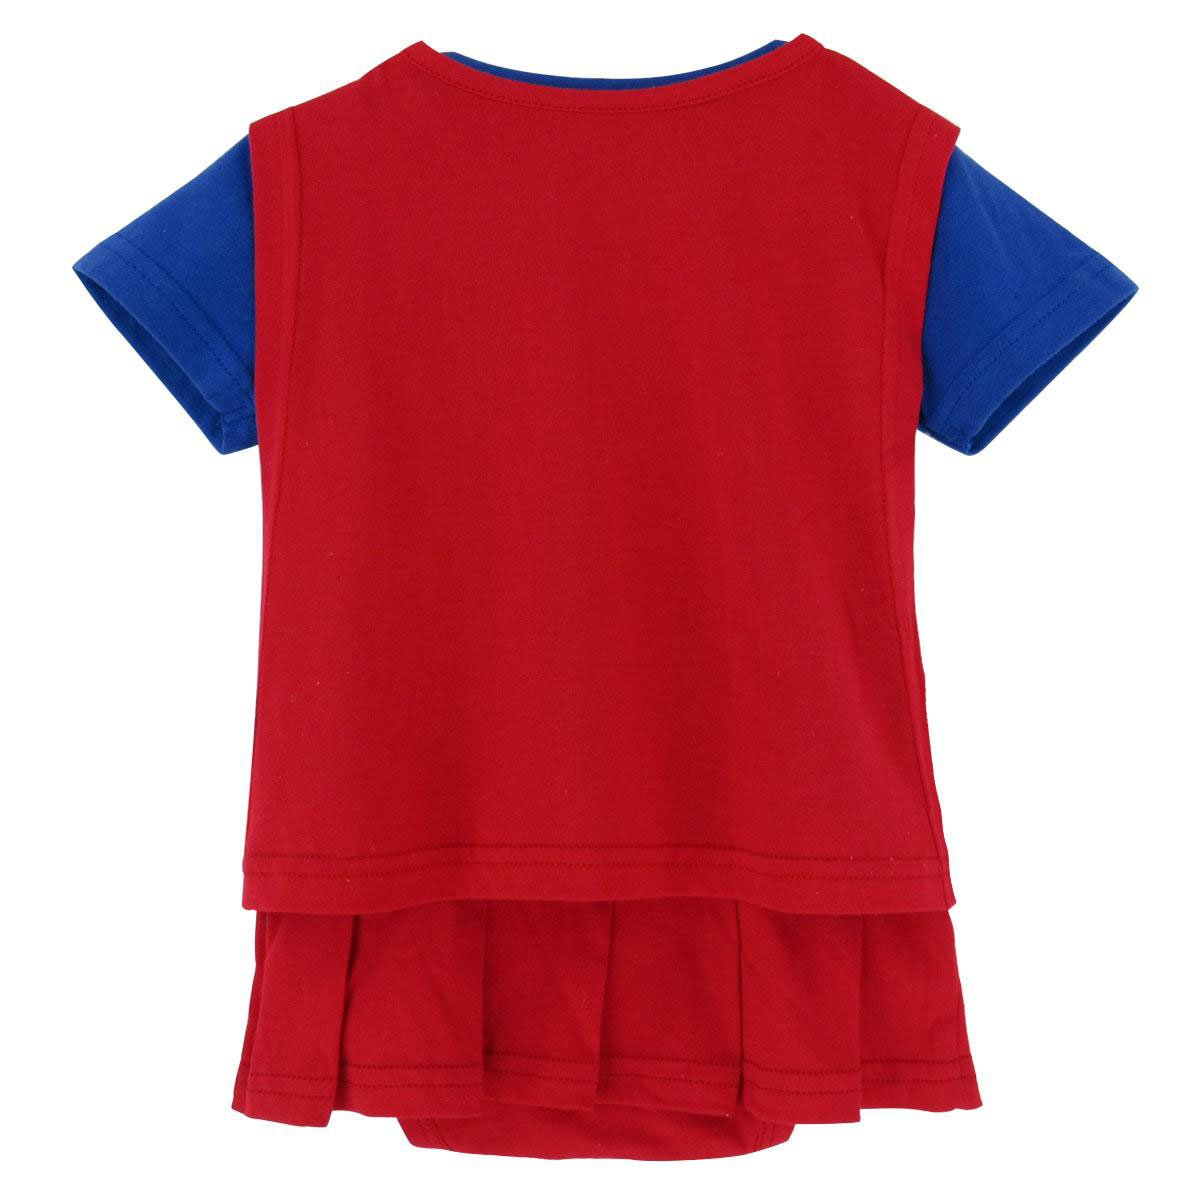 Blue Supergirl Caped Baby Toddler Girl Romper Party Dress Outfit 12-18 Months Blue Red Yellow